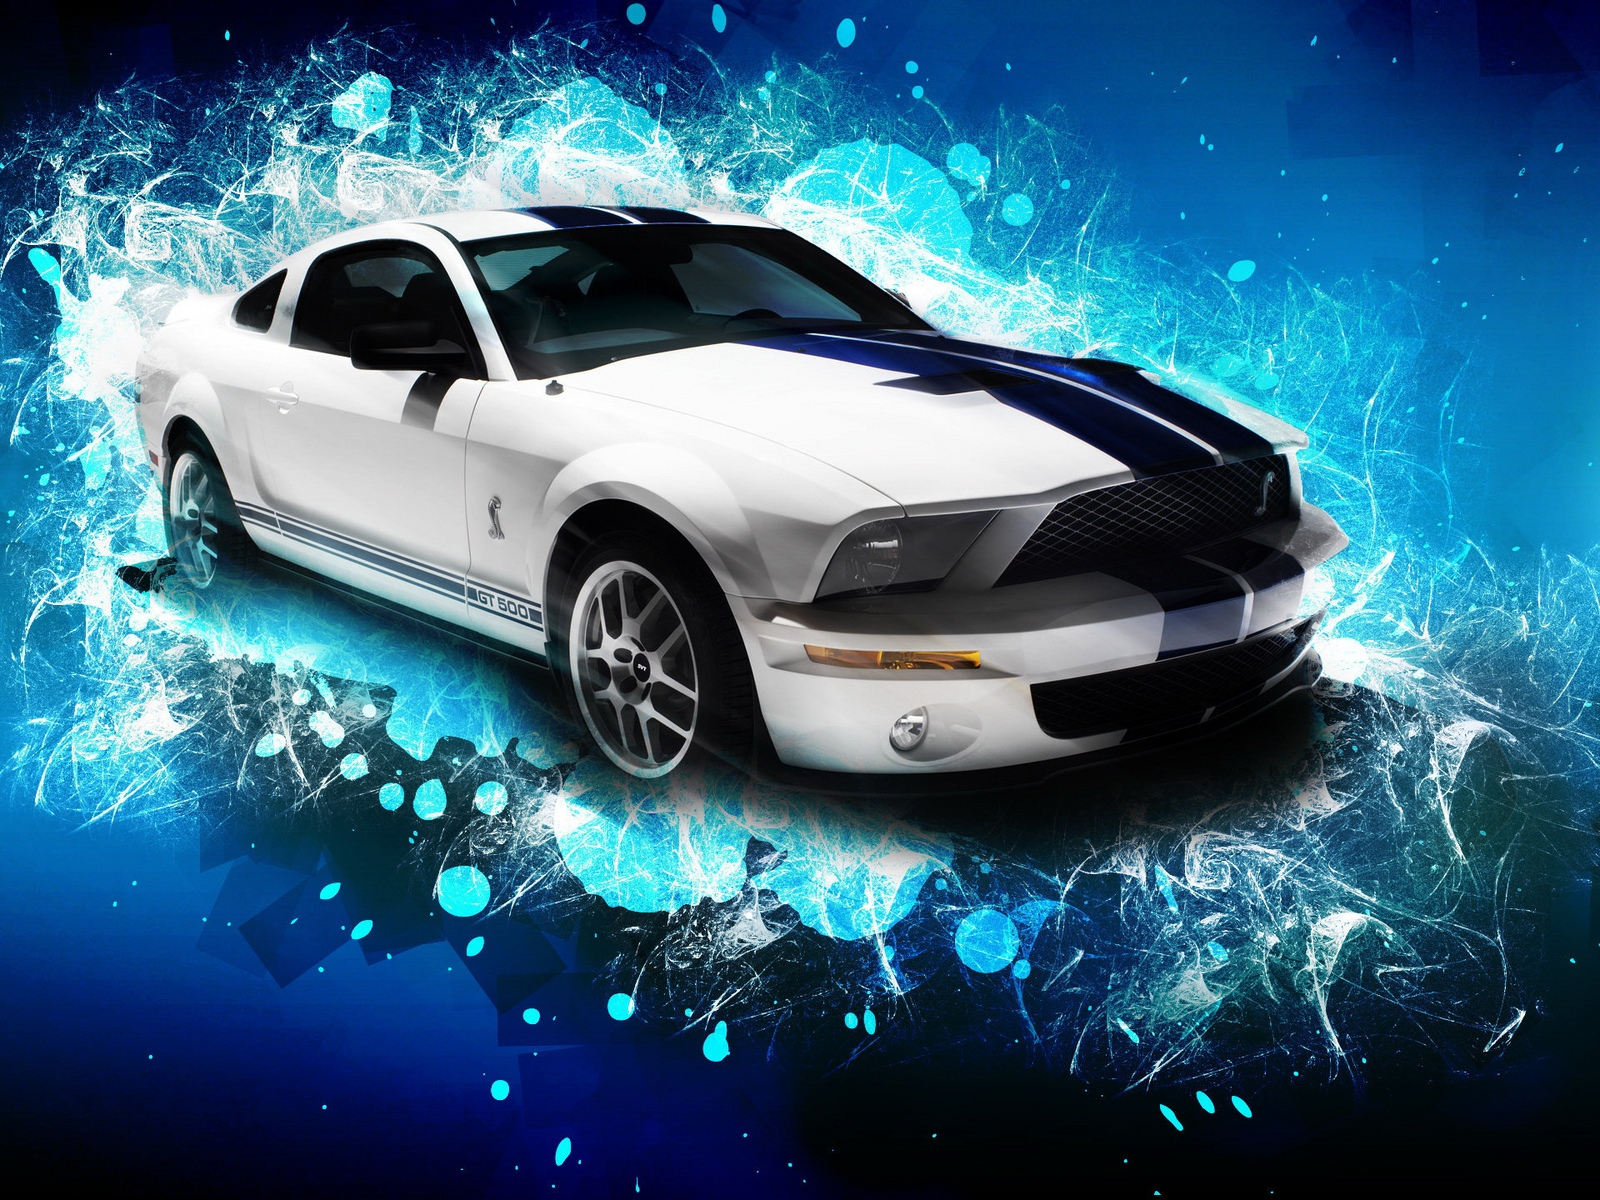 Hot 3d camaro coloring cars pictures photos images - Hd Car Wallpapers Cool Car Wallpapers